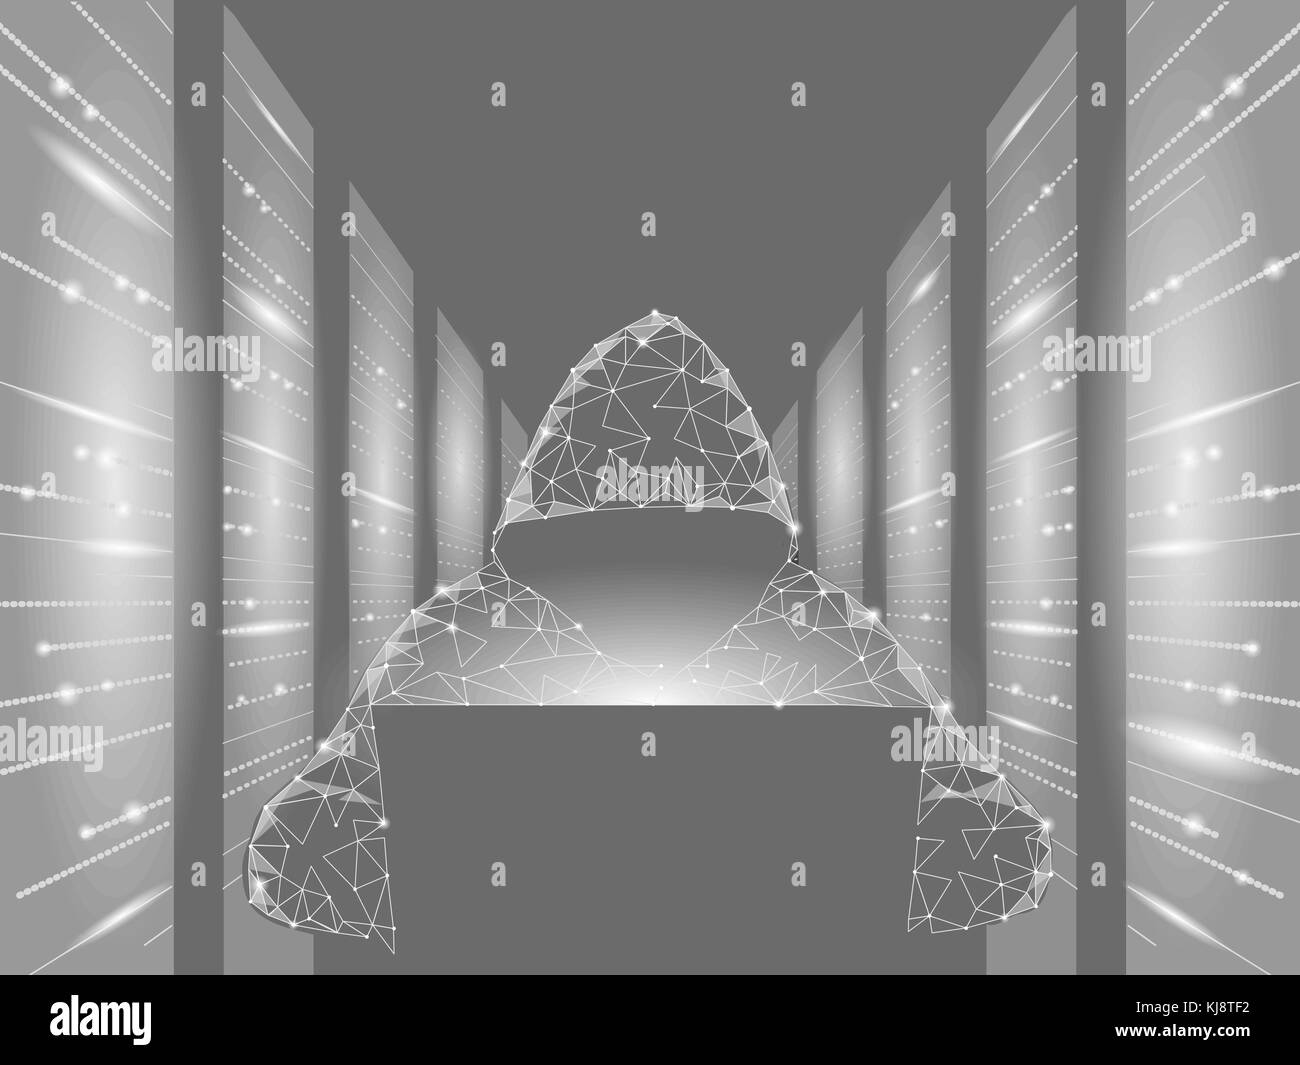 Internet Security Cyber Attack Business Konzept Low Poly. anonymer Hacker Laptop grau weiß Finanzen Gefahr. Stockbild